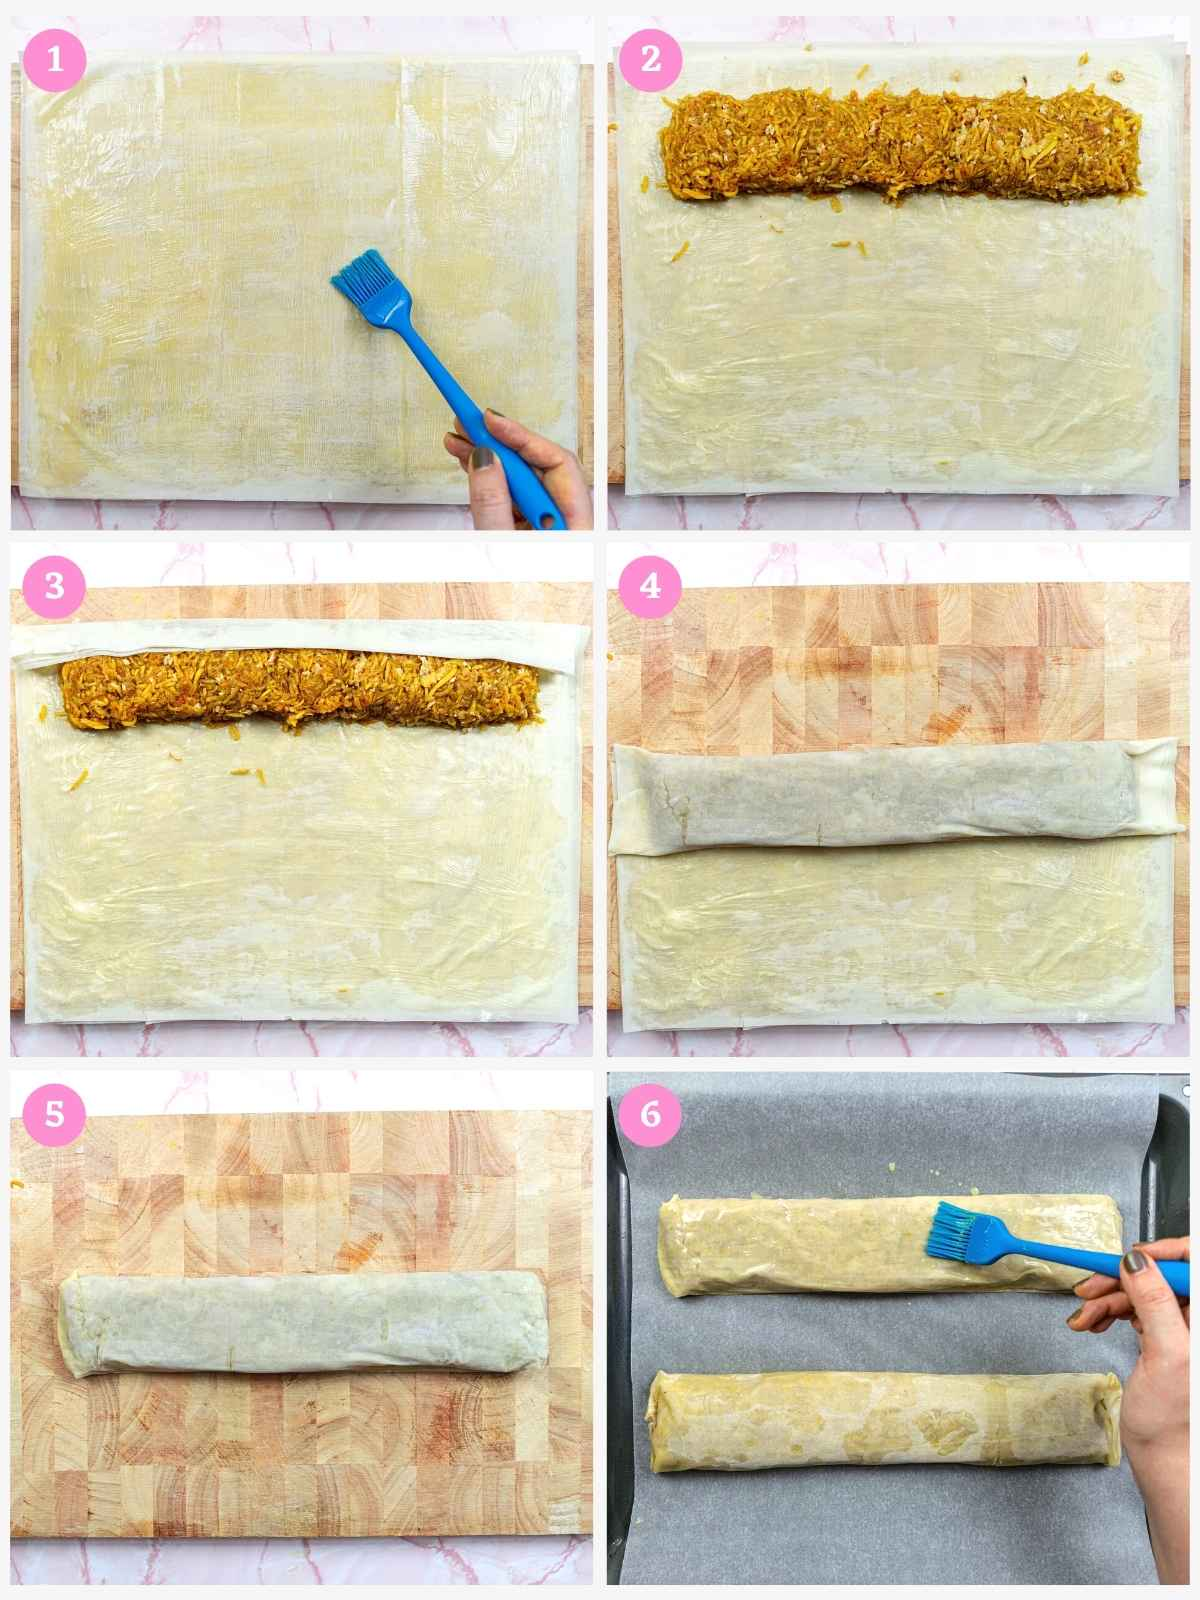 Collage of 6 images showing how to make walnut pumpkin pie with filo pastry